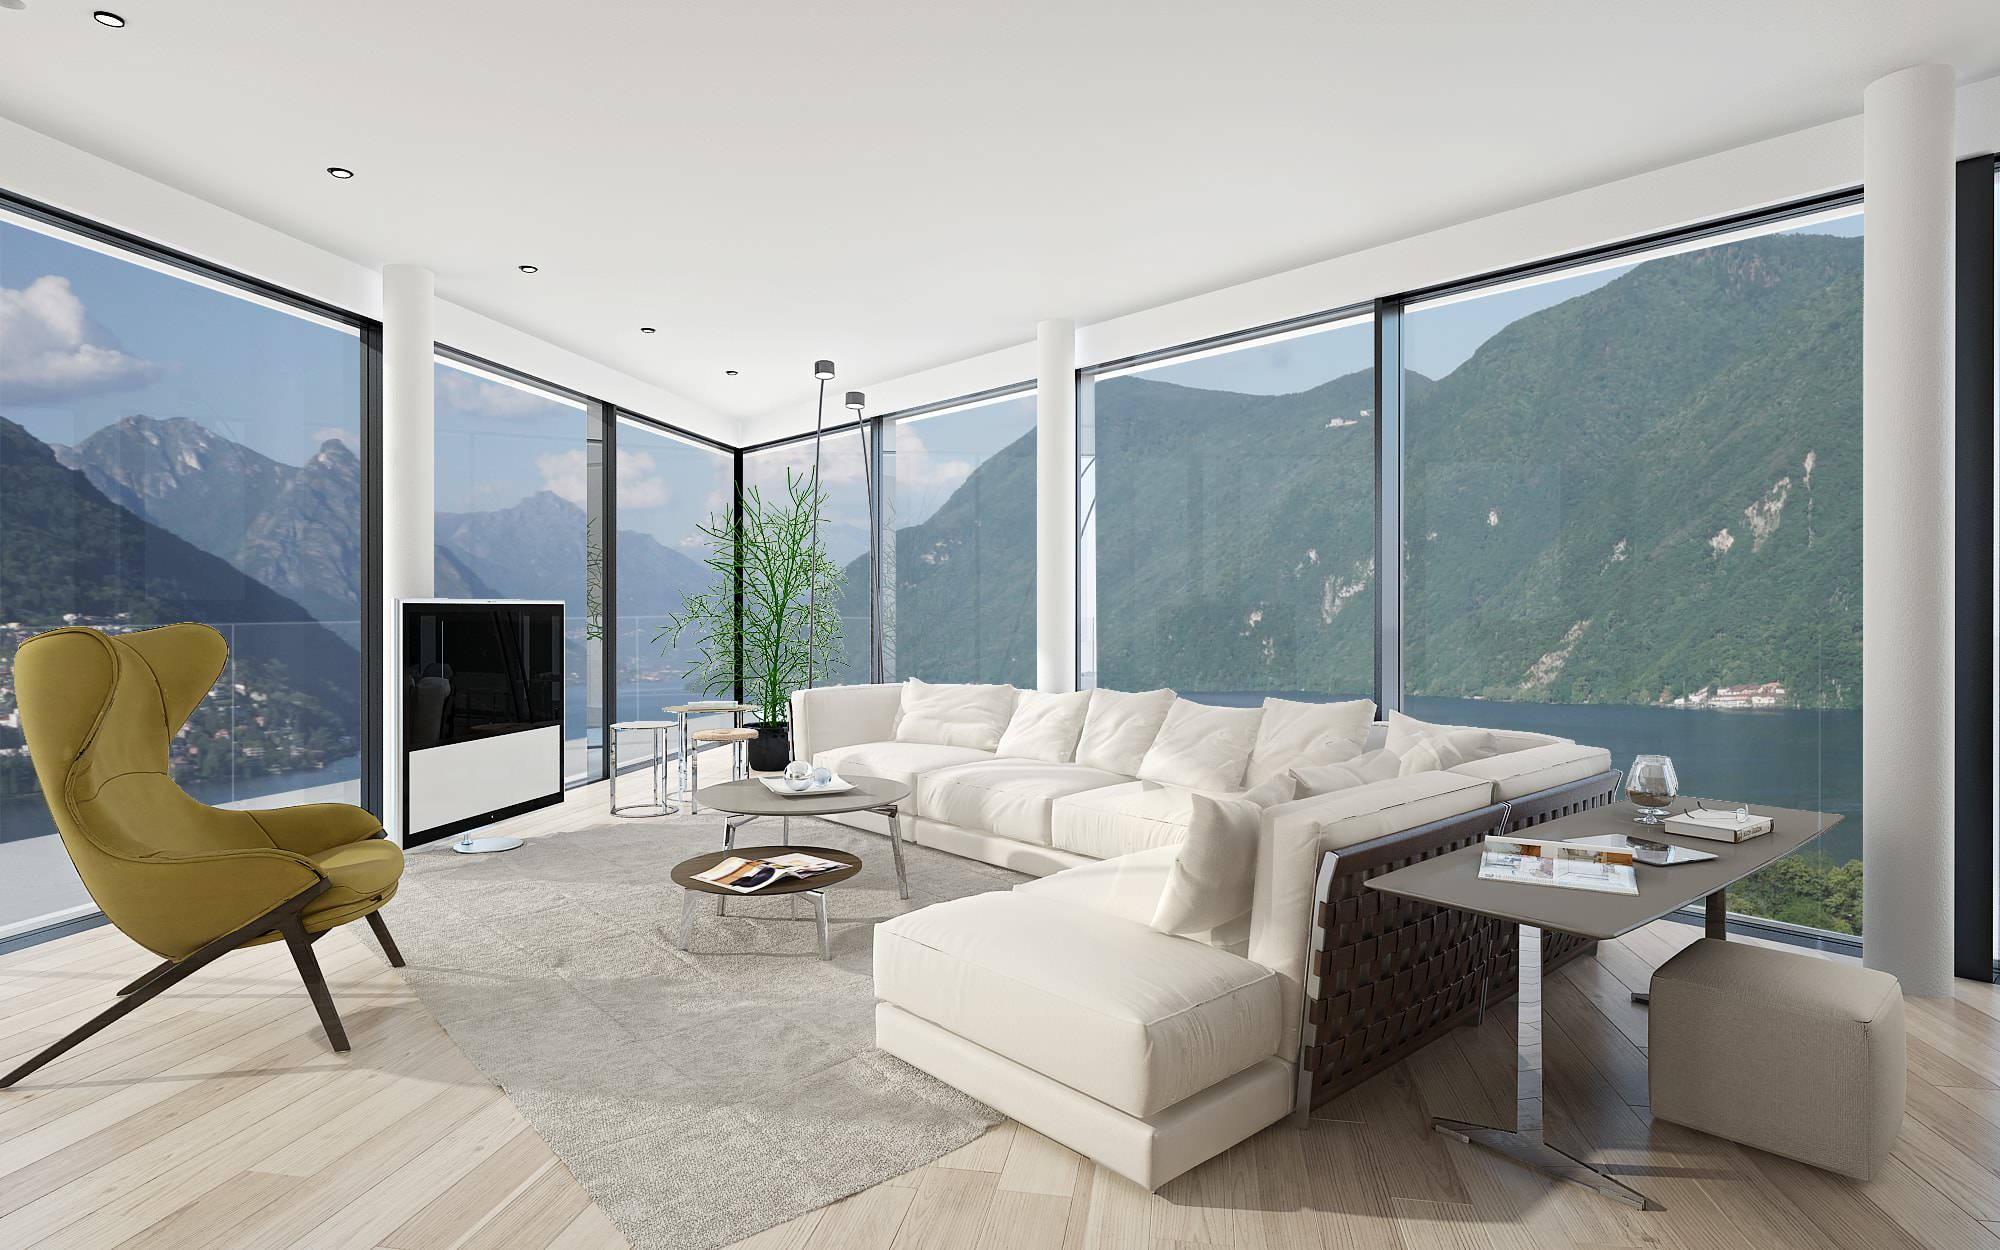 Modern penthouse interior view Lugano Ticino Switzerland